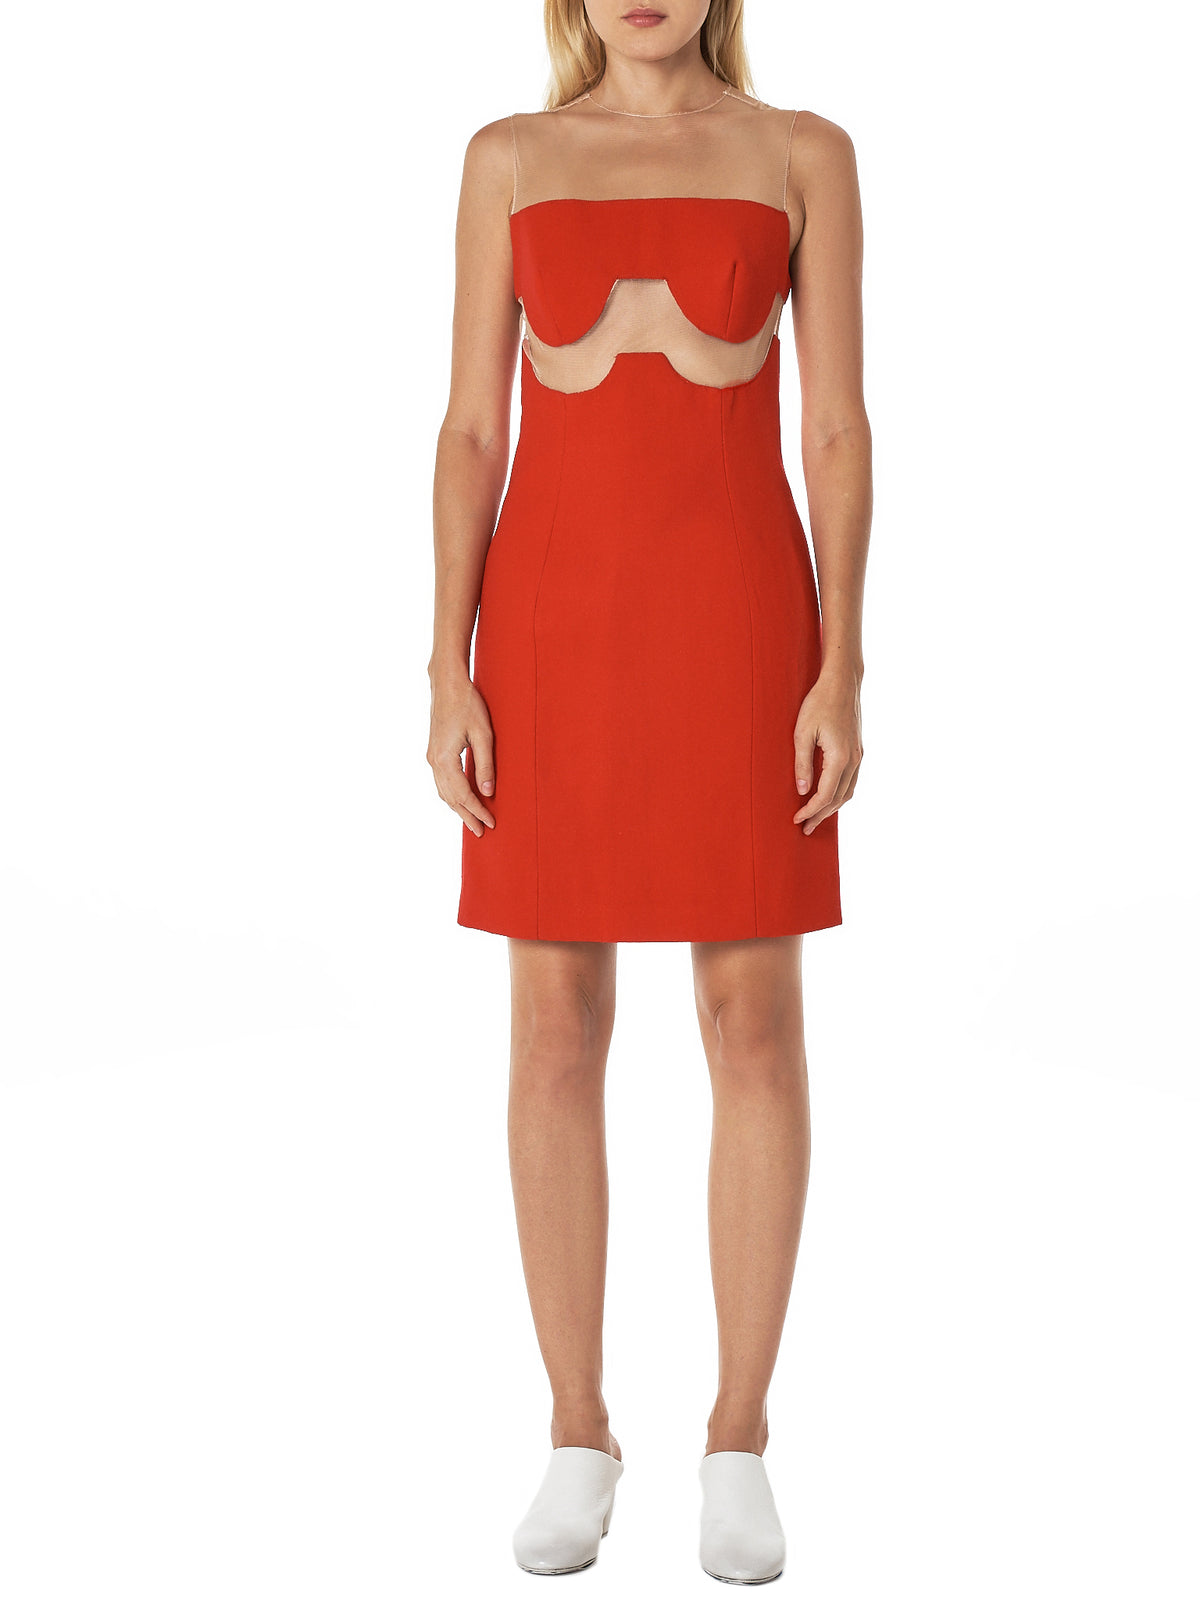 'Muchu' Tulle Strap Dress (MUCHU-NUDE-RED)